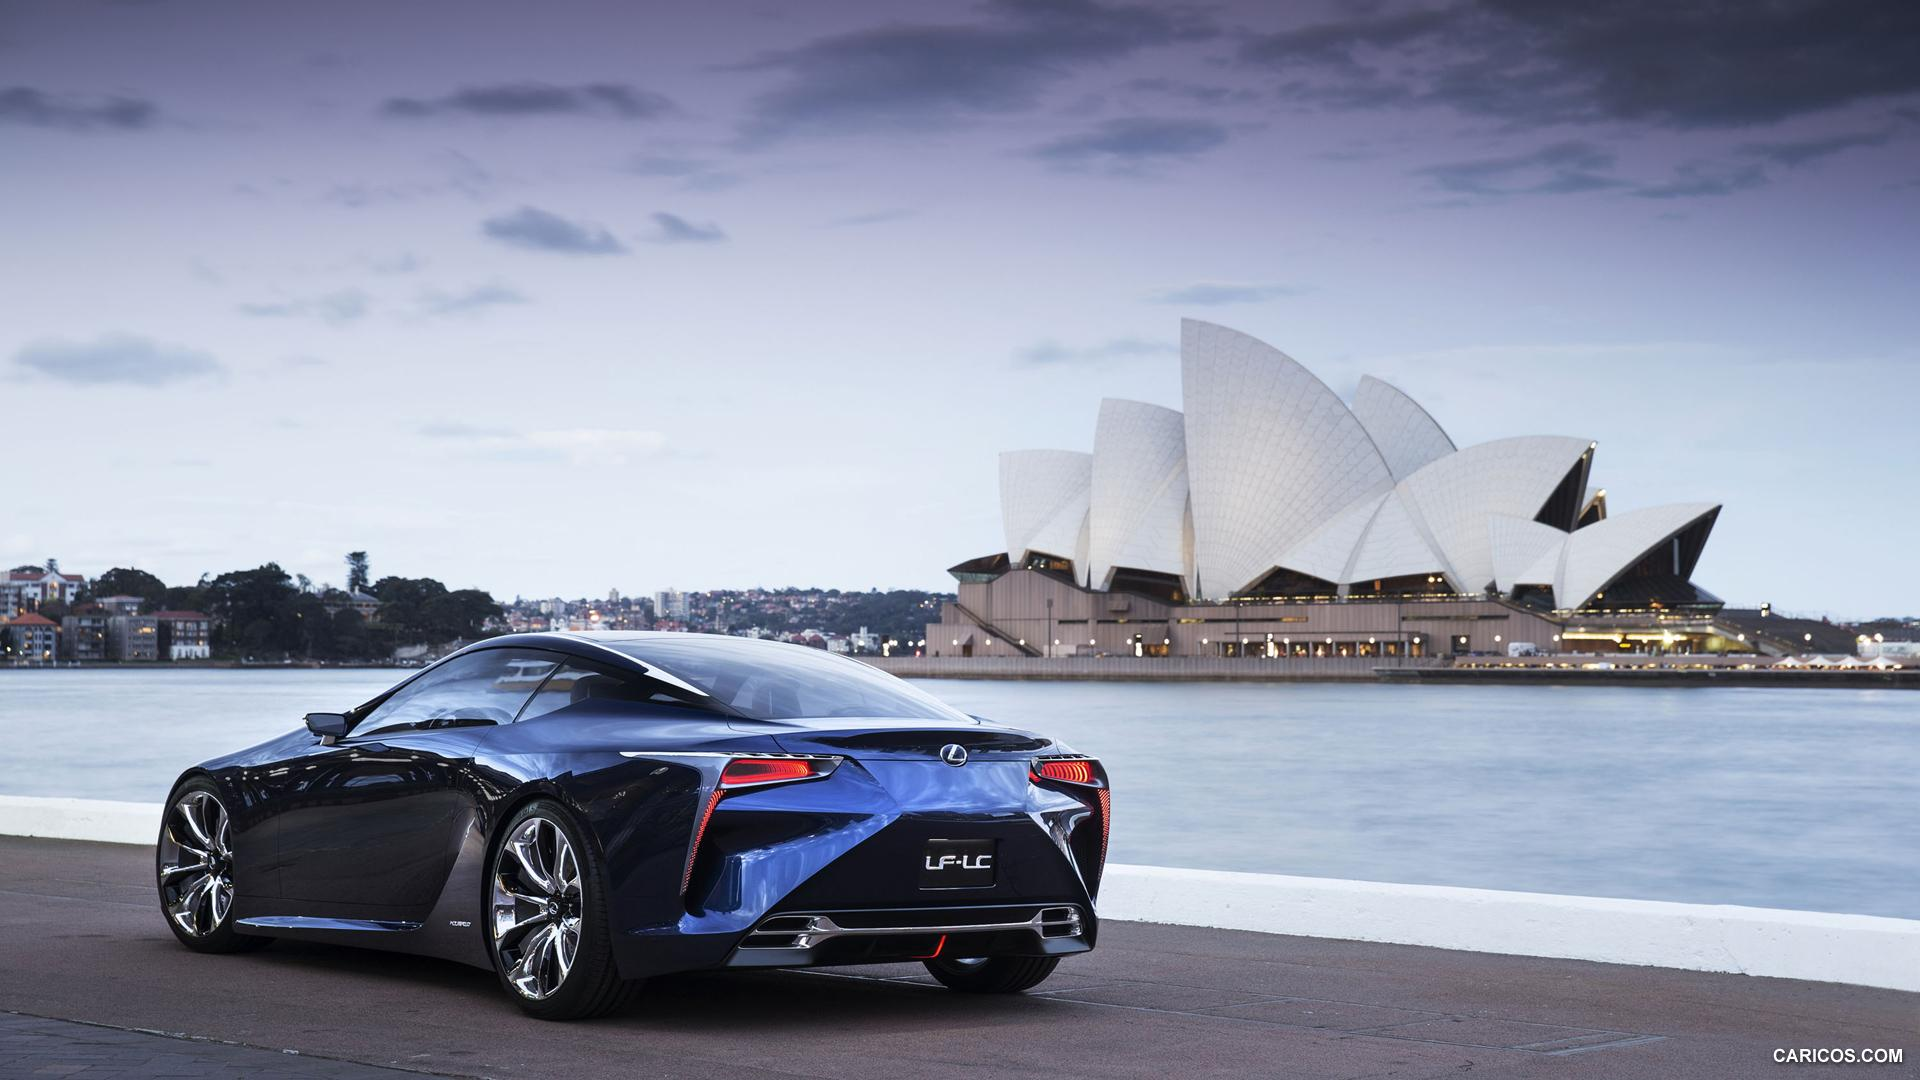 Lf Lc Wallpaper Hd Free, Lexus, Lexus Wallpapers, Tuning, Lexus Lfa ...